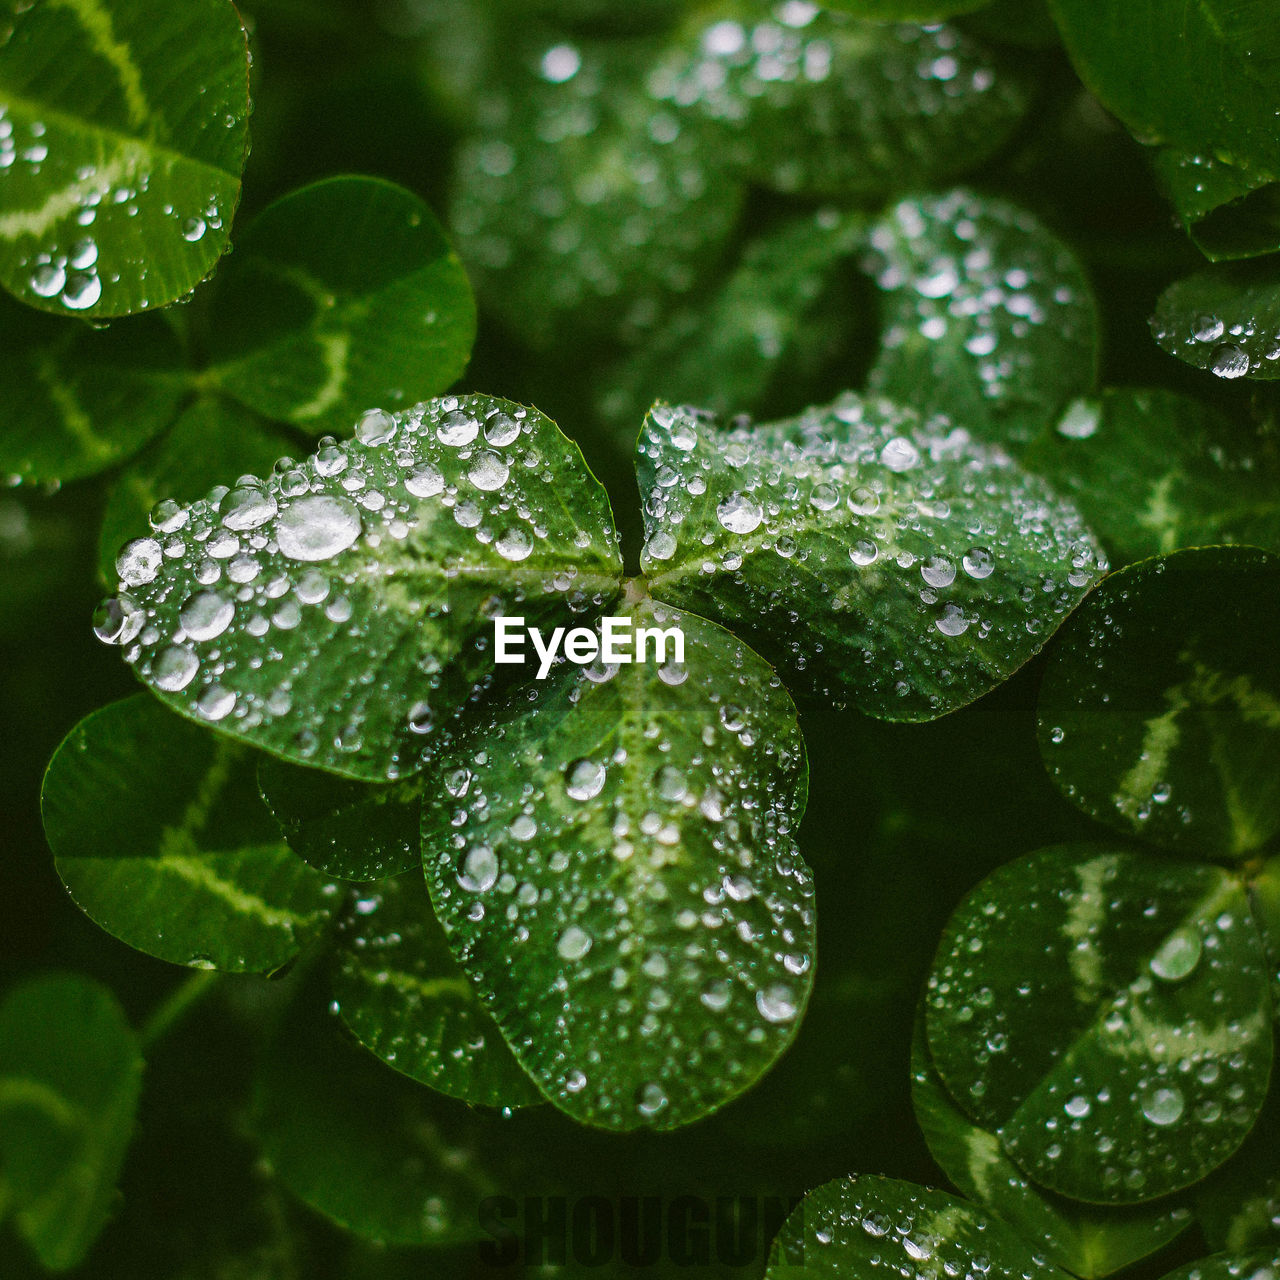 leaf, water, plant part, drop, wet, growth, green color, plant, freshness, close-up, no people, nature, beauty in nature, day, full frame, food and drink, rain, outdoors, leaves, rainy season, raindrop, dew, purity